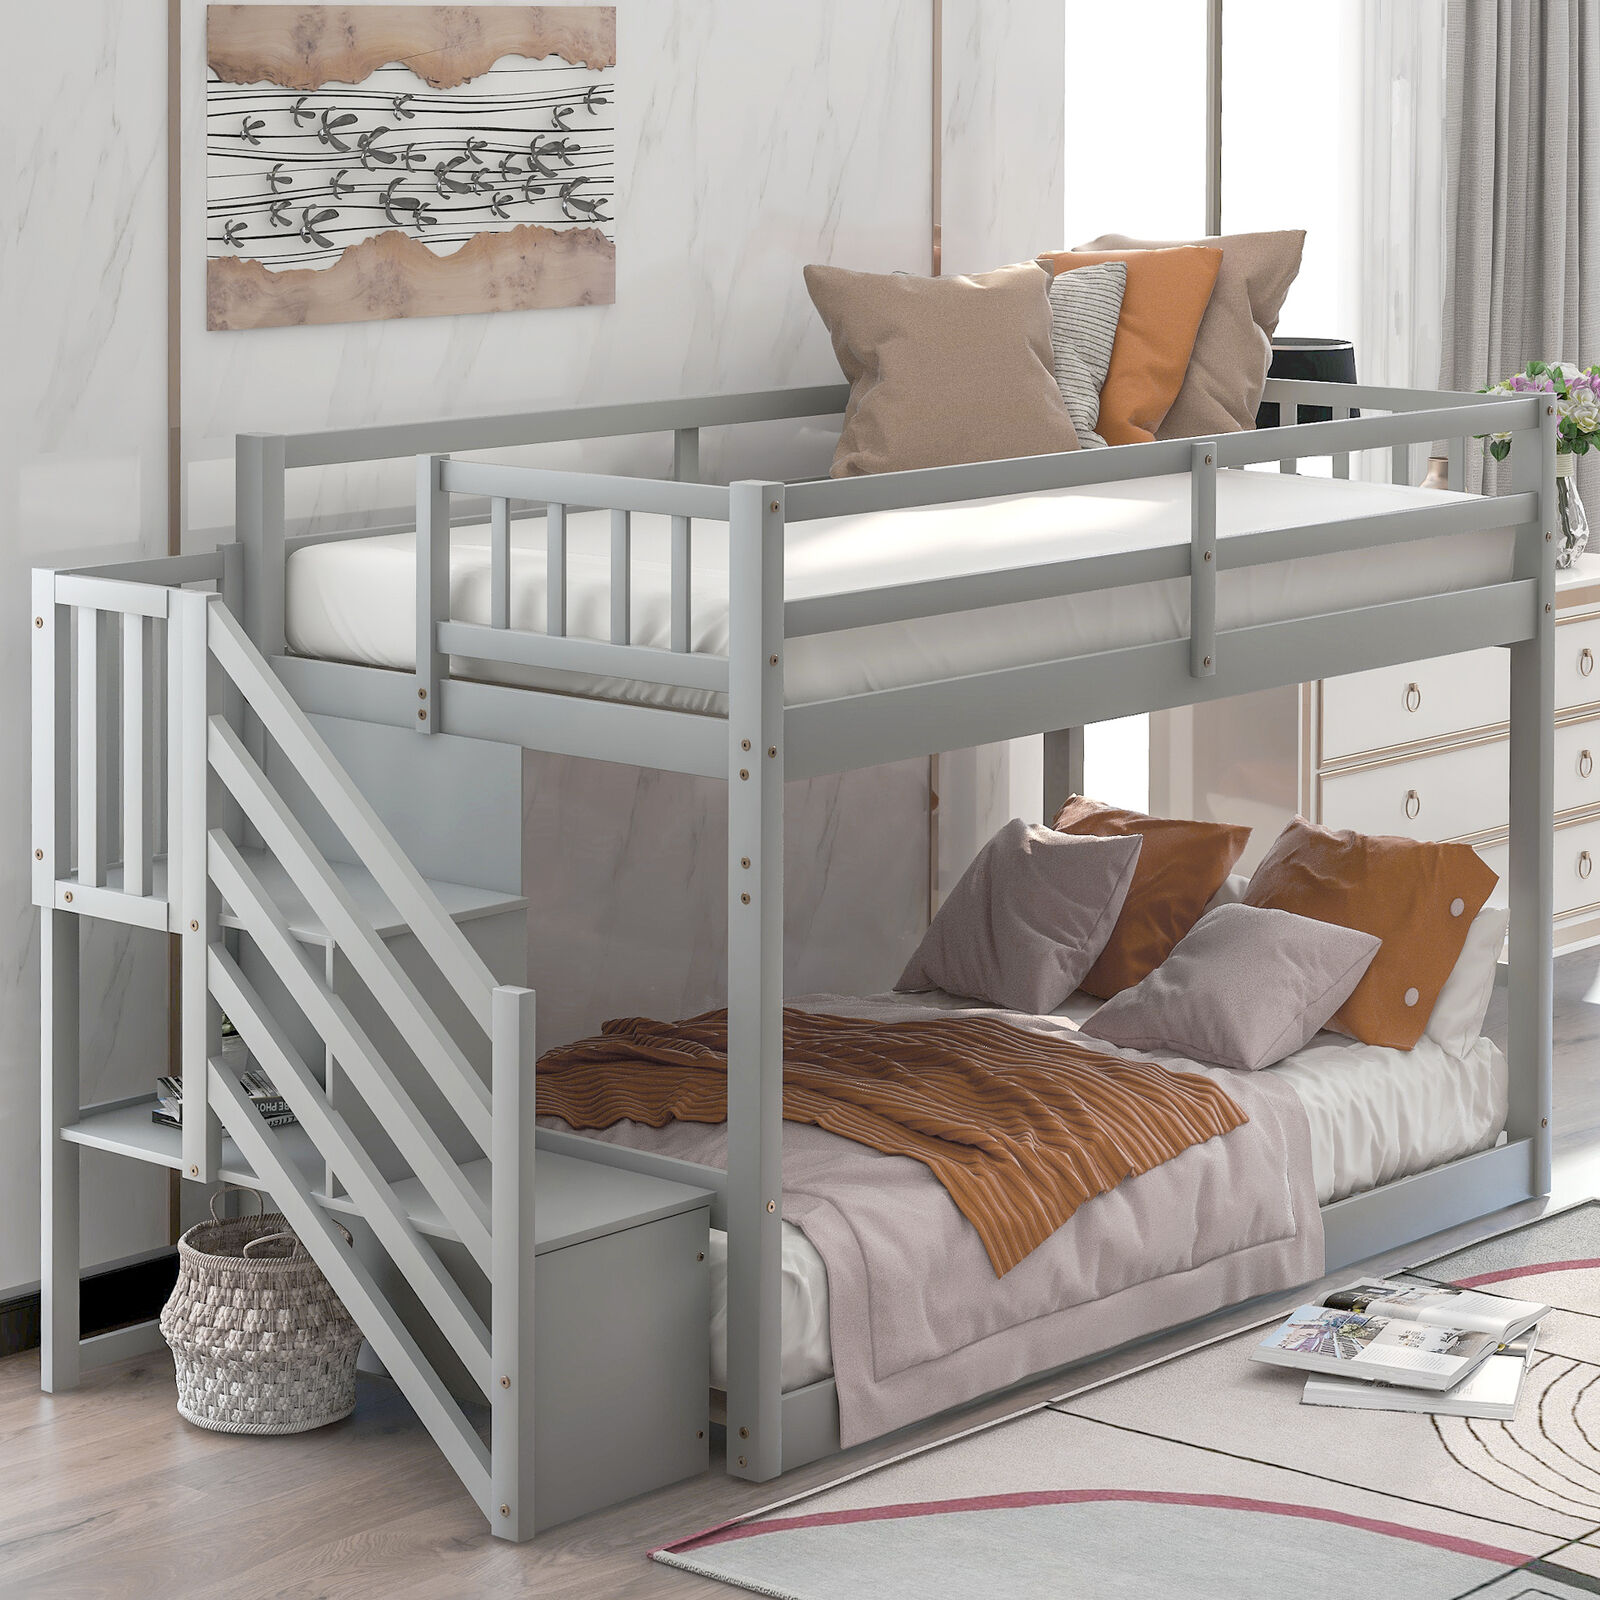 Canwood Alpine Ii Loft Bed White For Sale Online Ebay